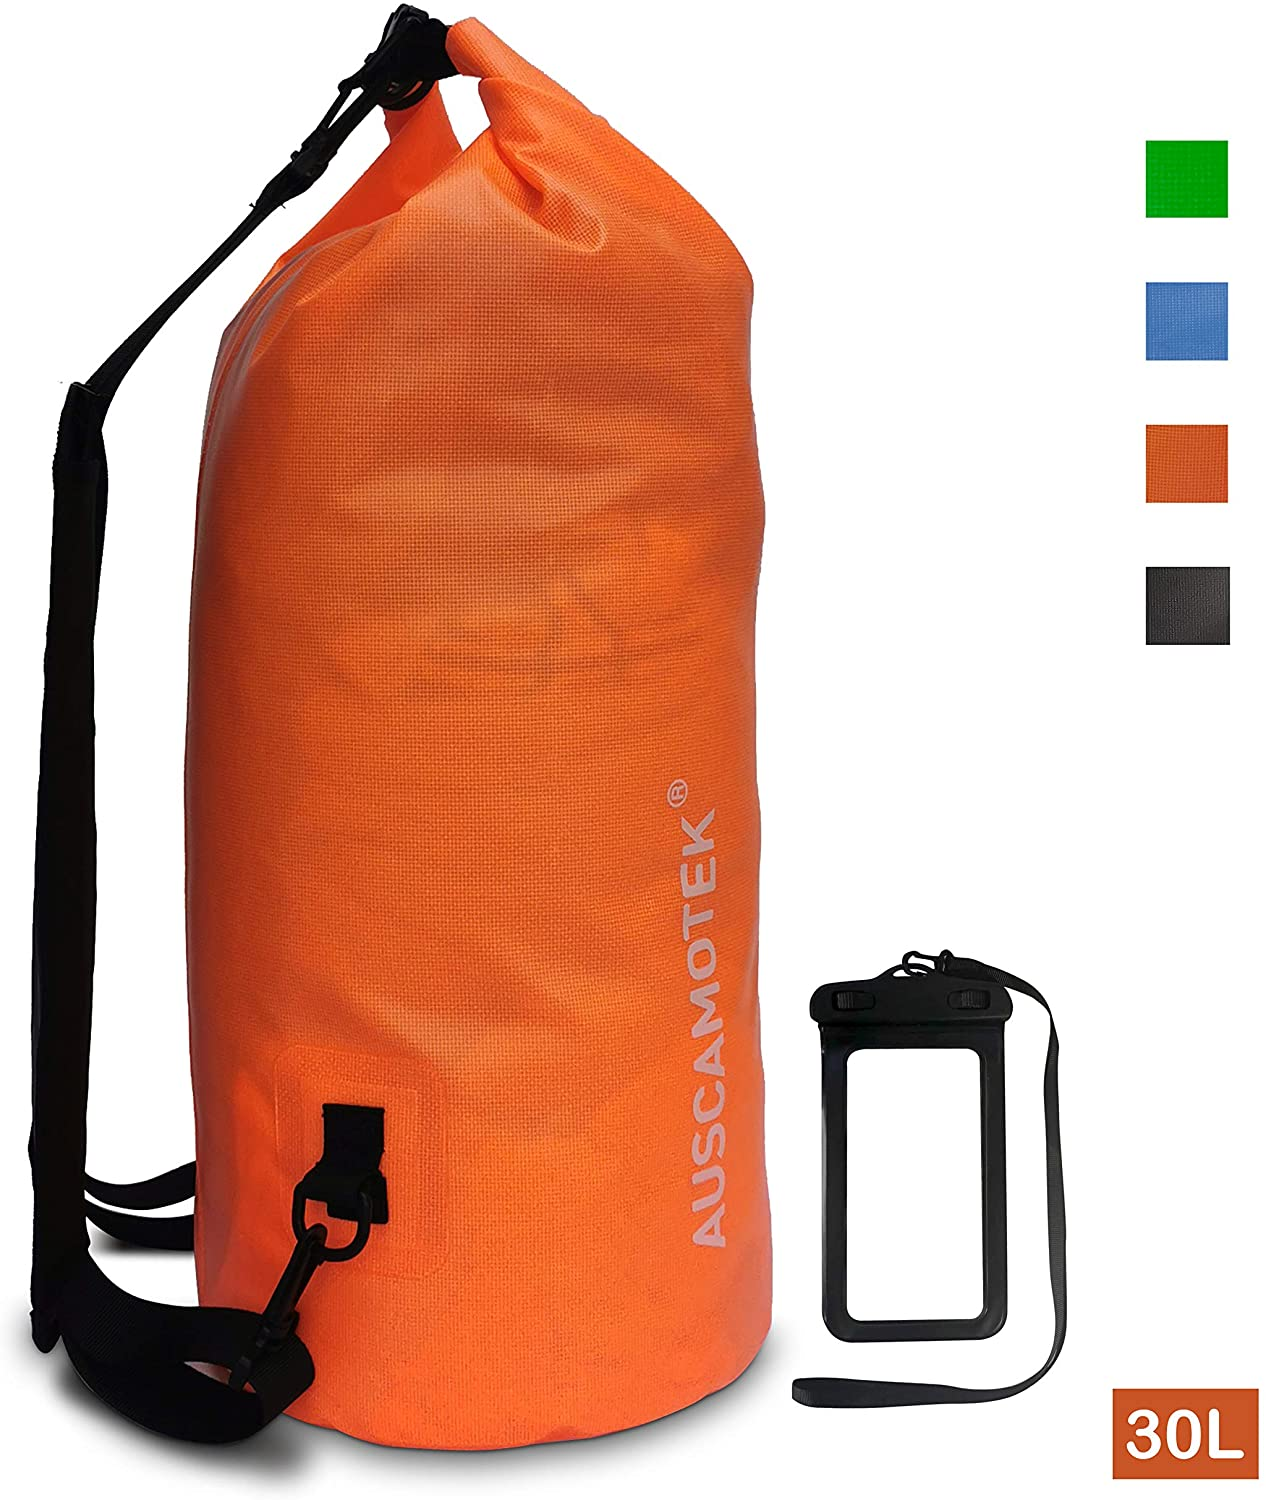 Auscamotek Waterproof Dry Bag Roll Top Dry Compression Sack for Boating Kayaking Beach Rafting Hiking Camping Fishing Hunting Waterproof with Phone Case